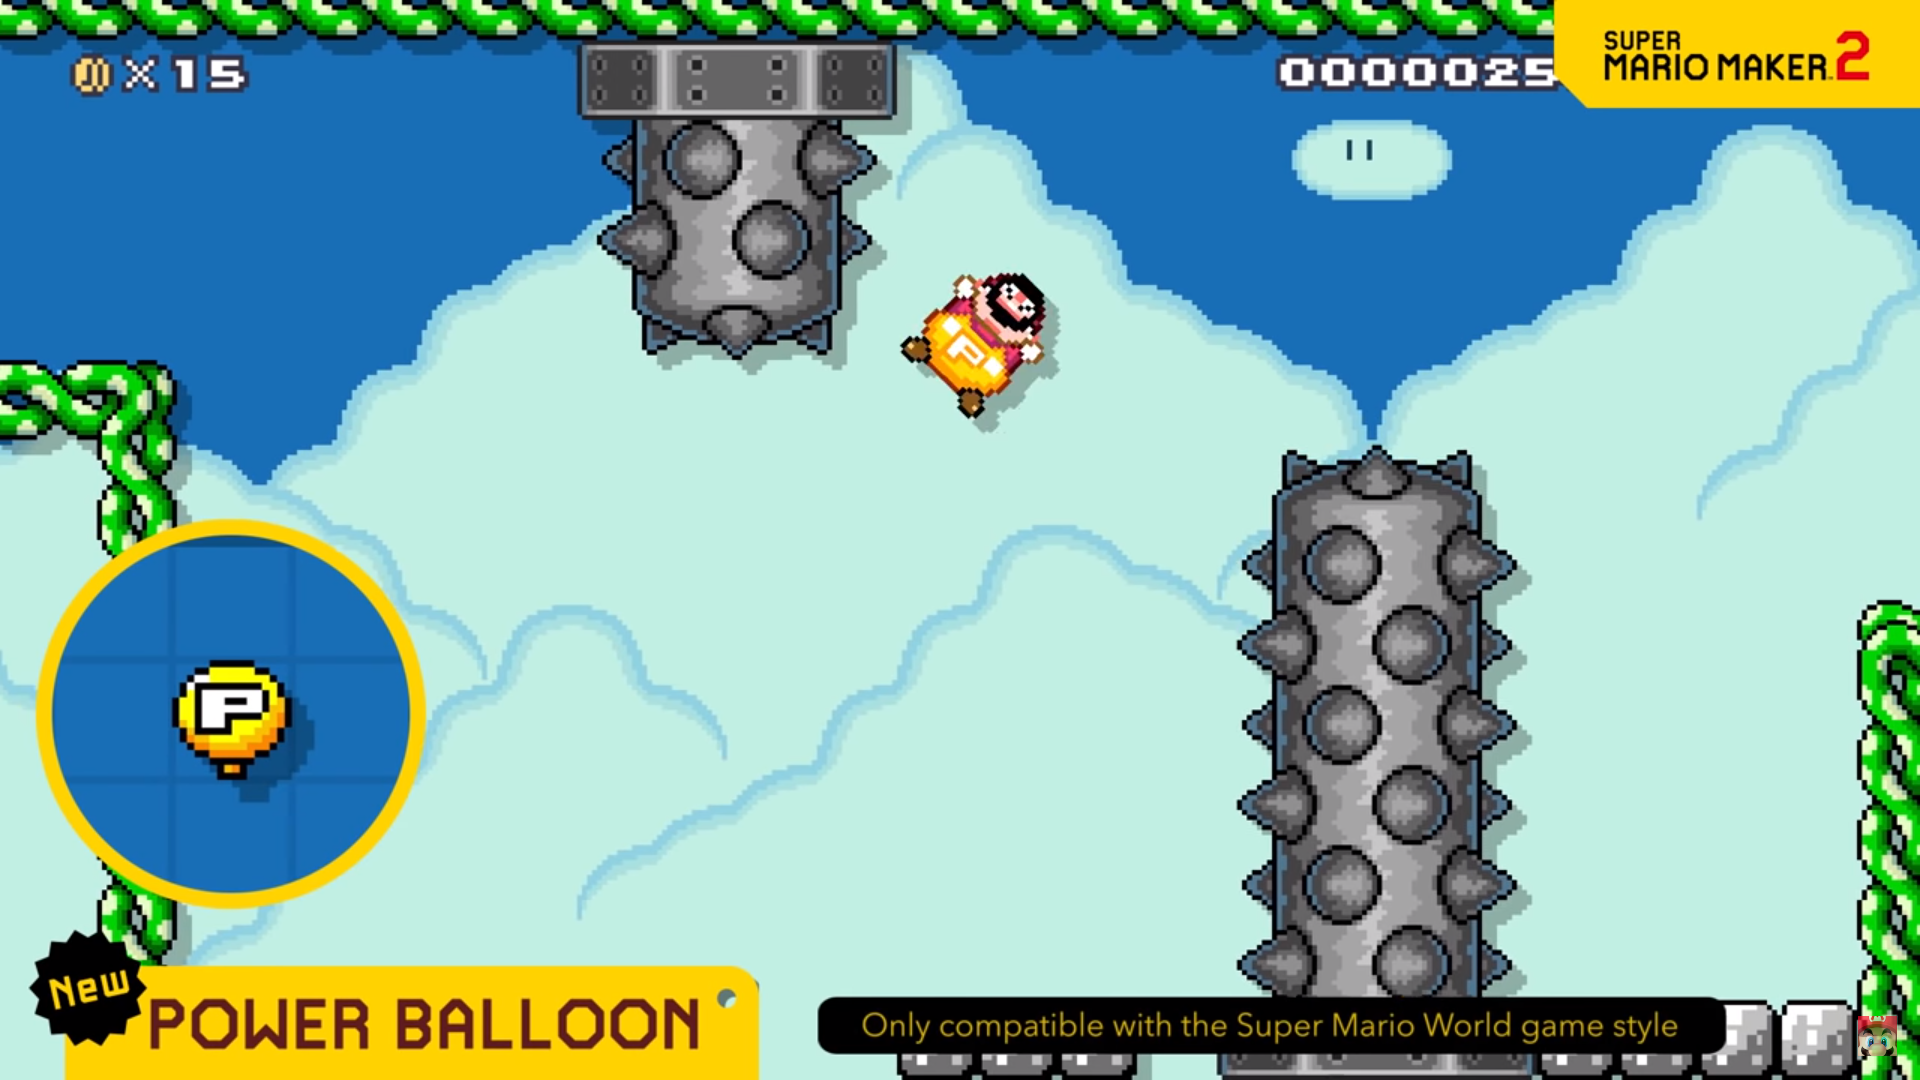 Power Balloon Super Mario Maker 2